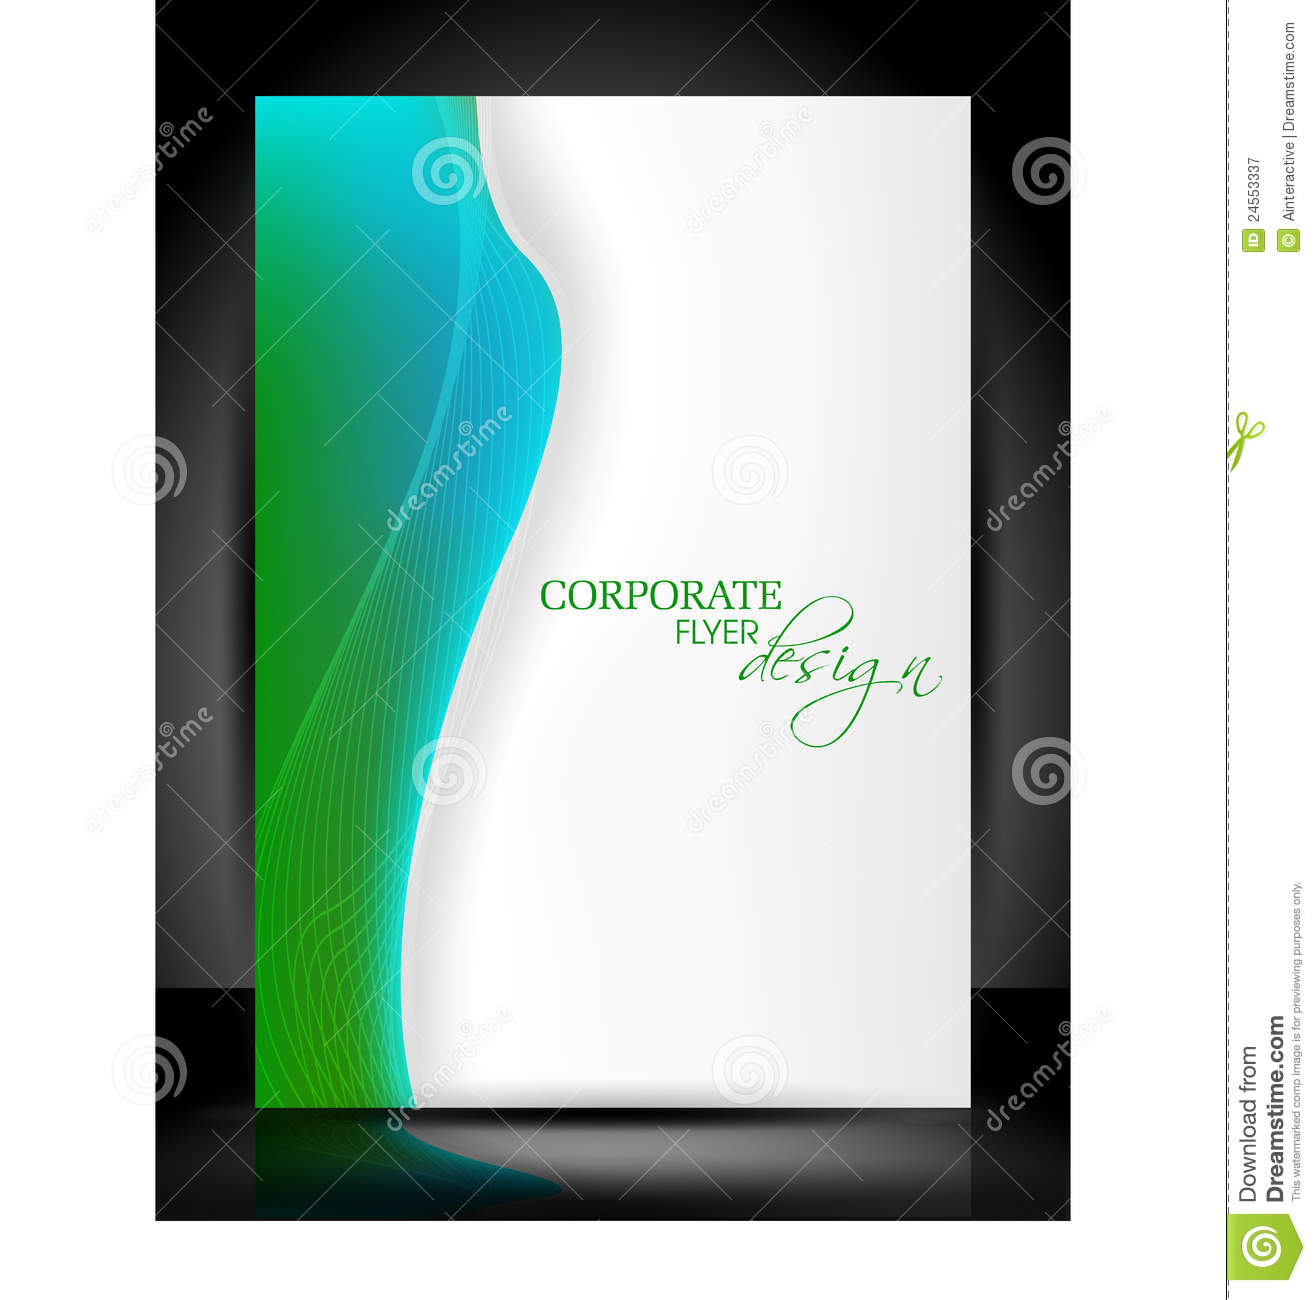 Flyer Template Design Stock Illustration - Image: 49040682